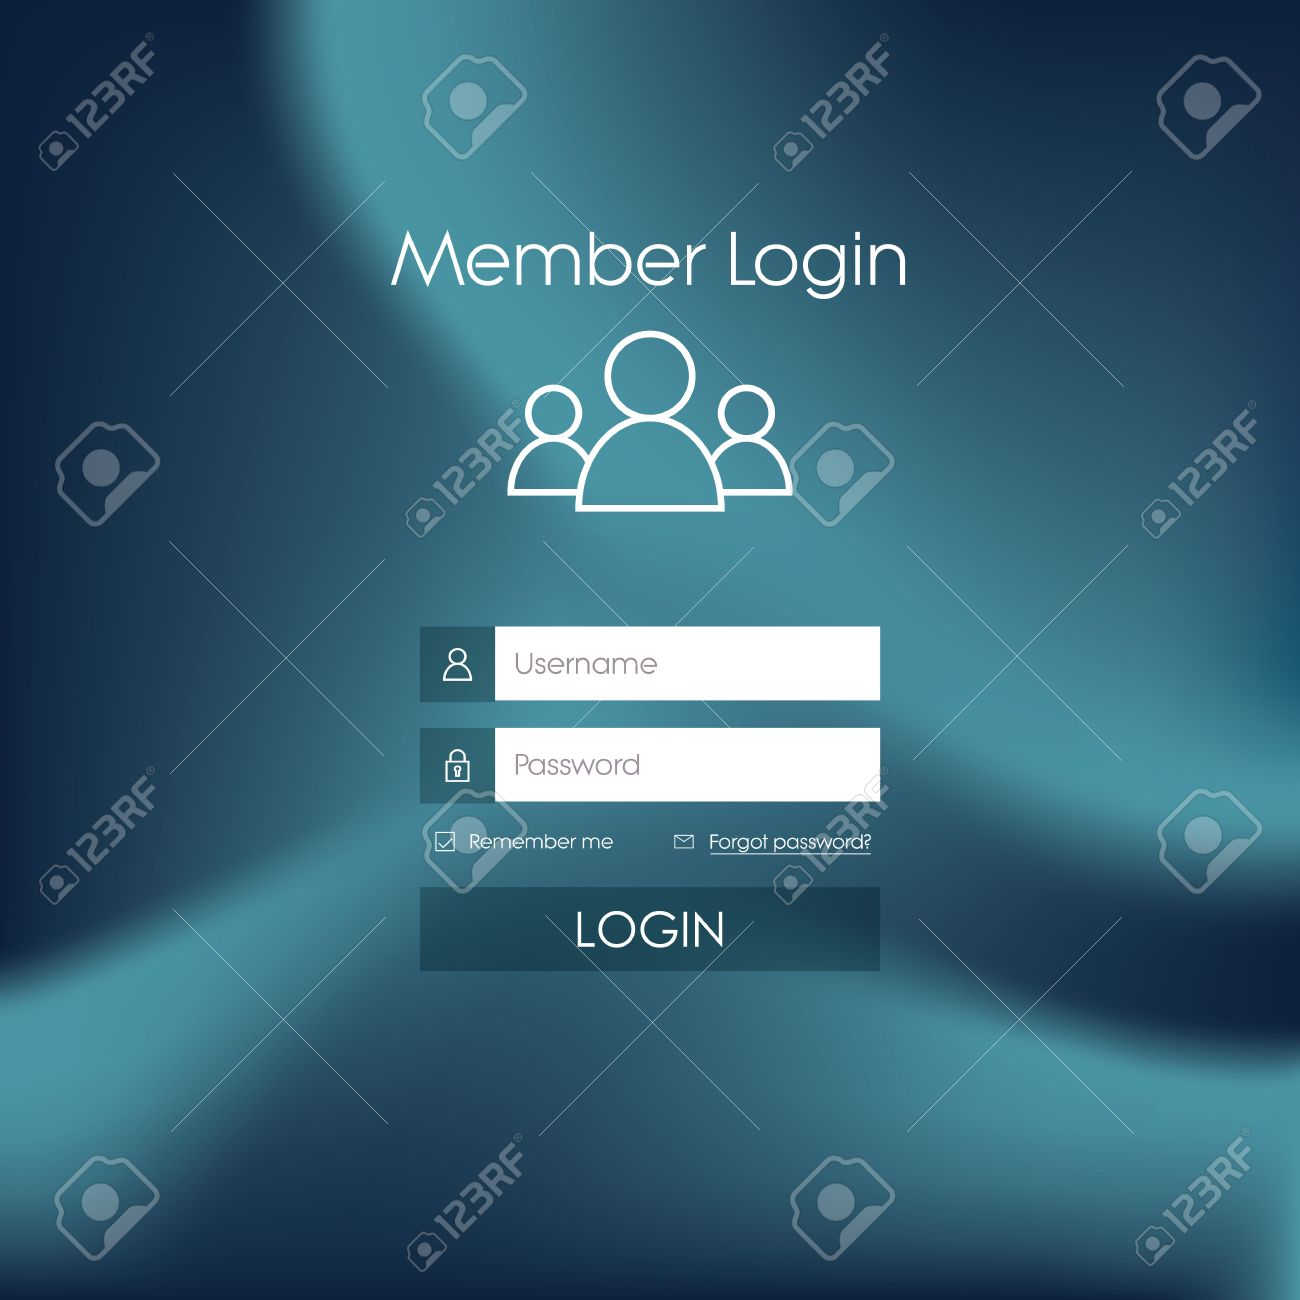 login form menu with simple line icons blurred background websitelogin form menu with simple line icons blurred background website element for your web